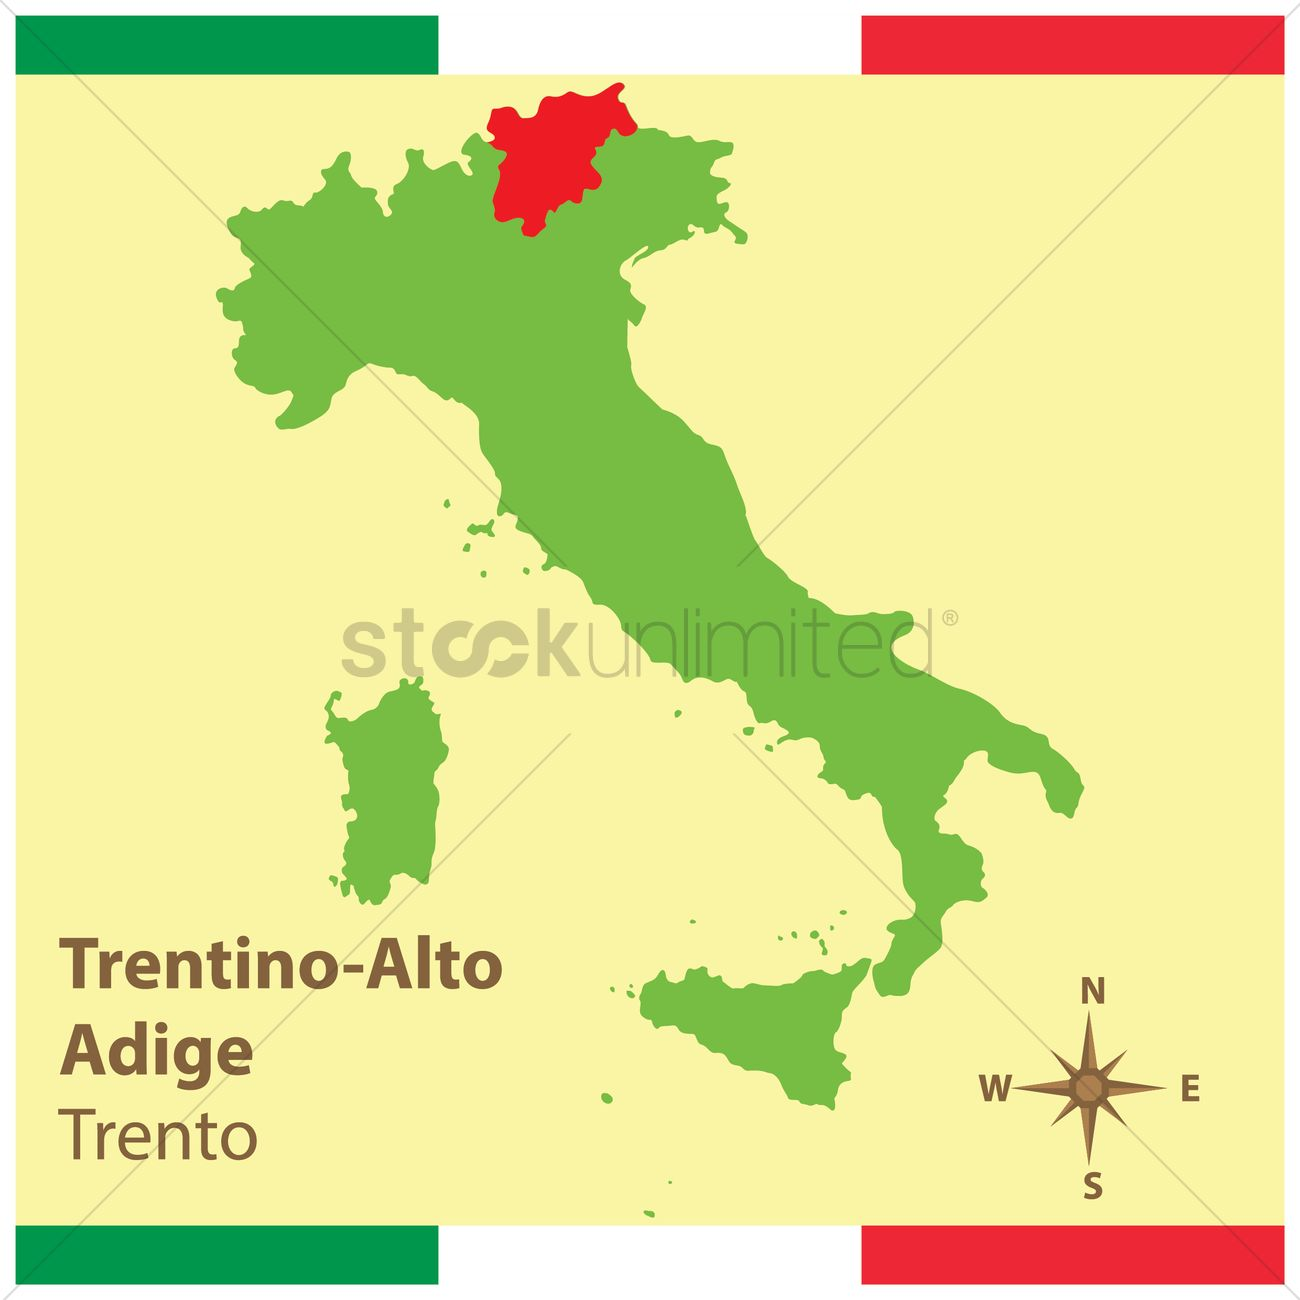 Trentinoalto adige on italy map Vector Image 1583938 StockUnlimited